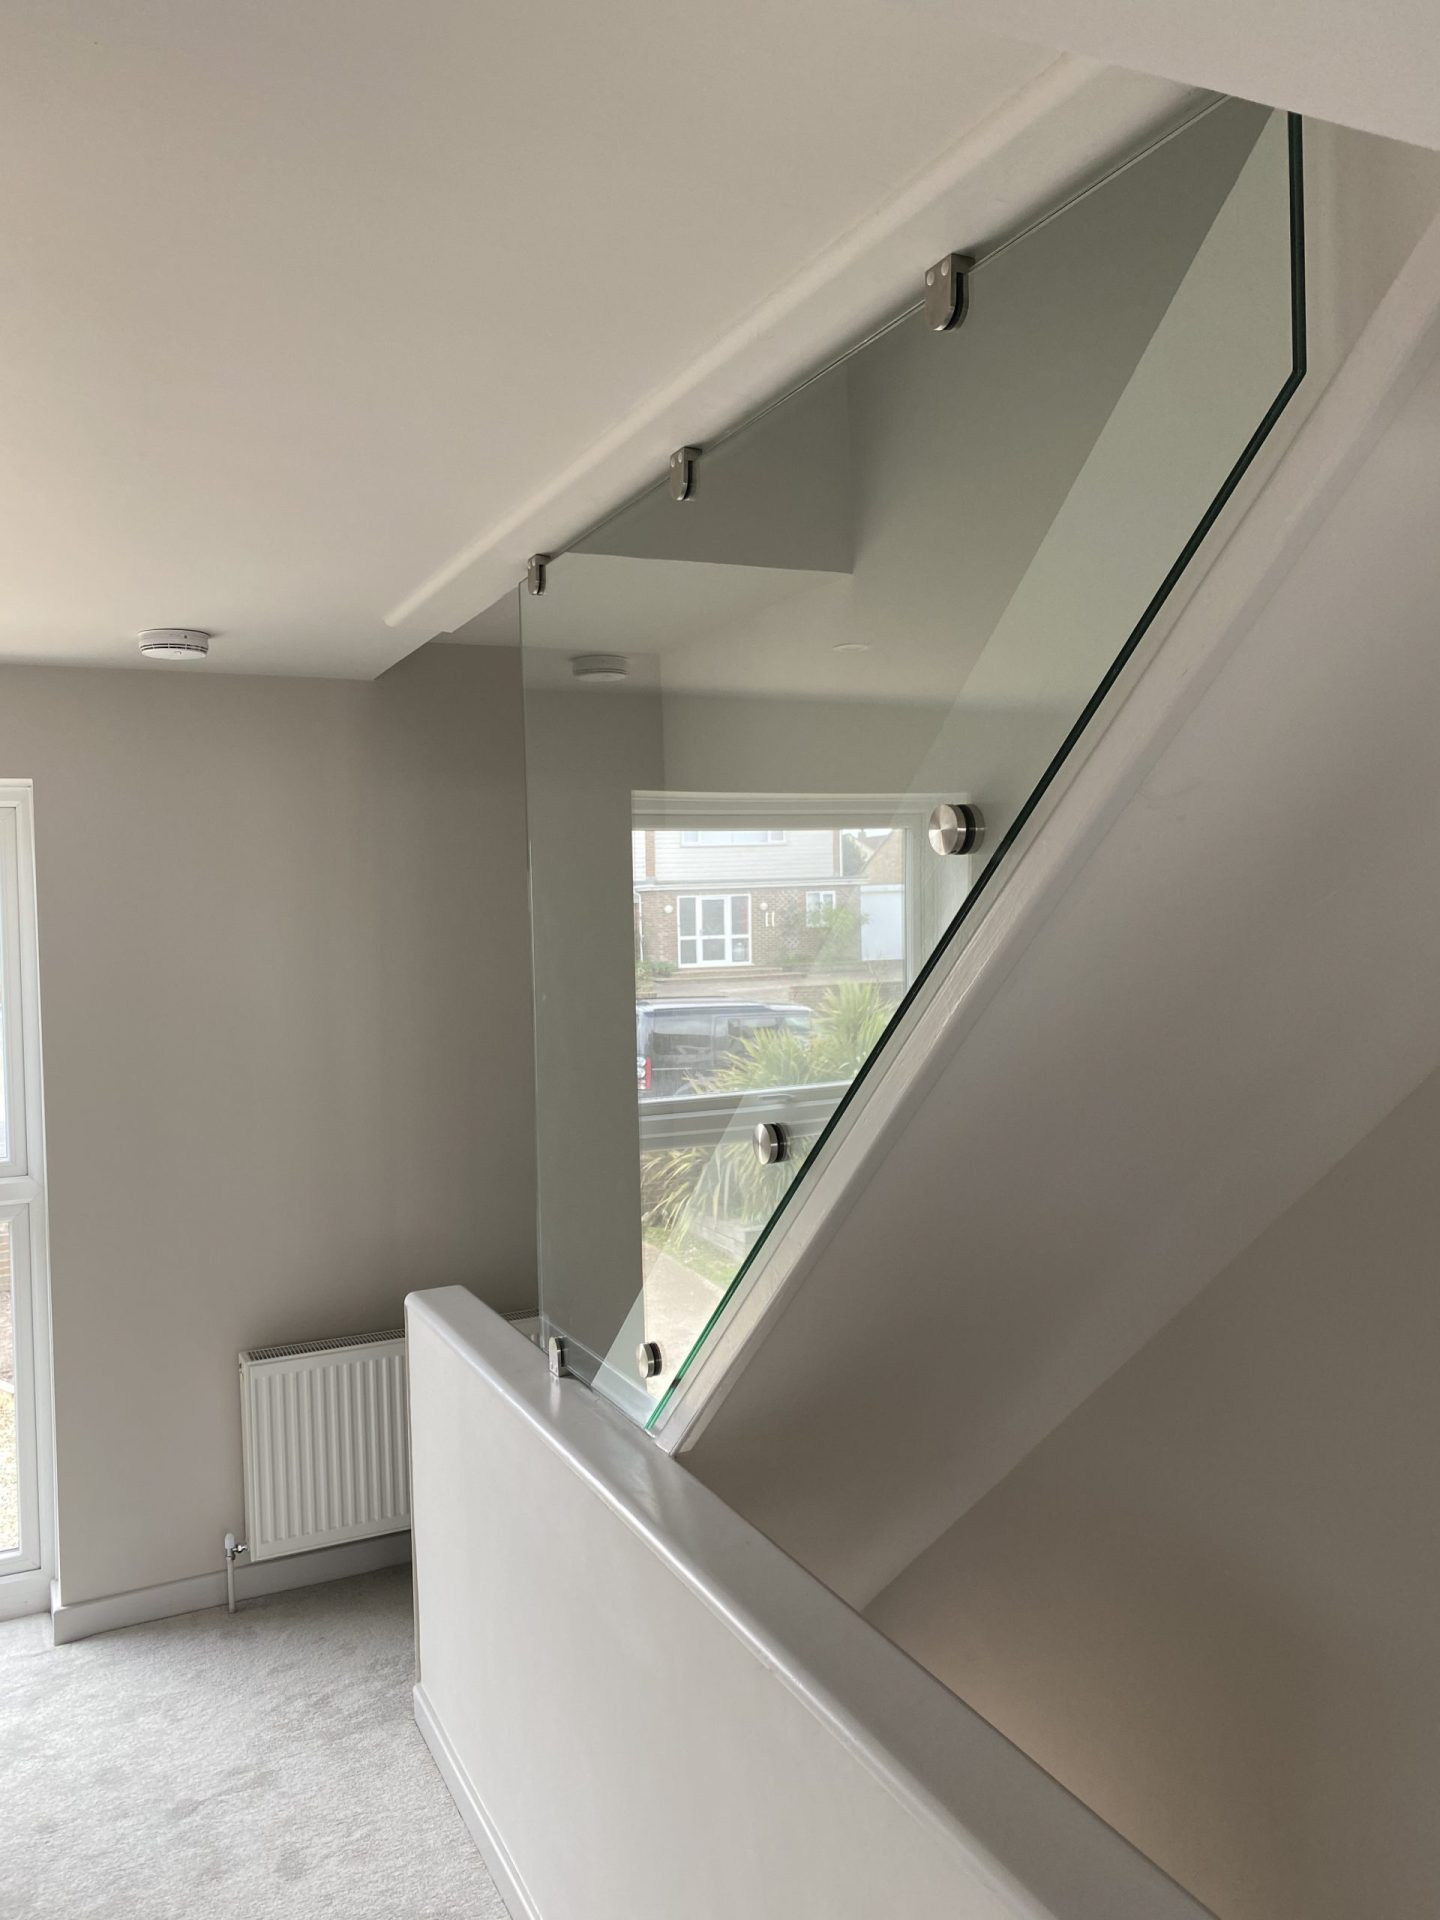 Side fixed balustrade infill panel